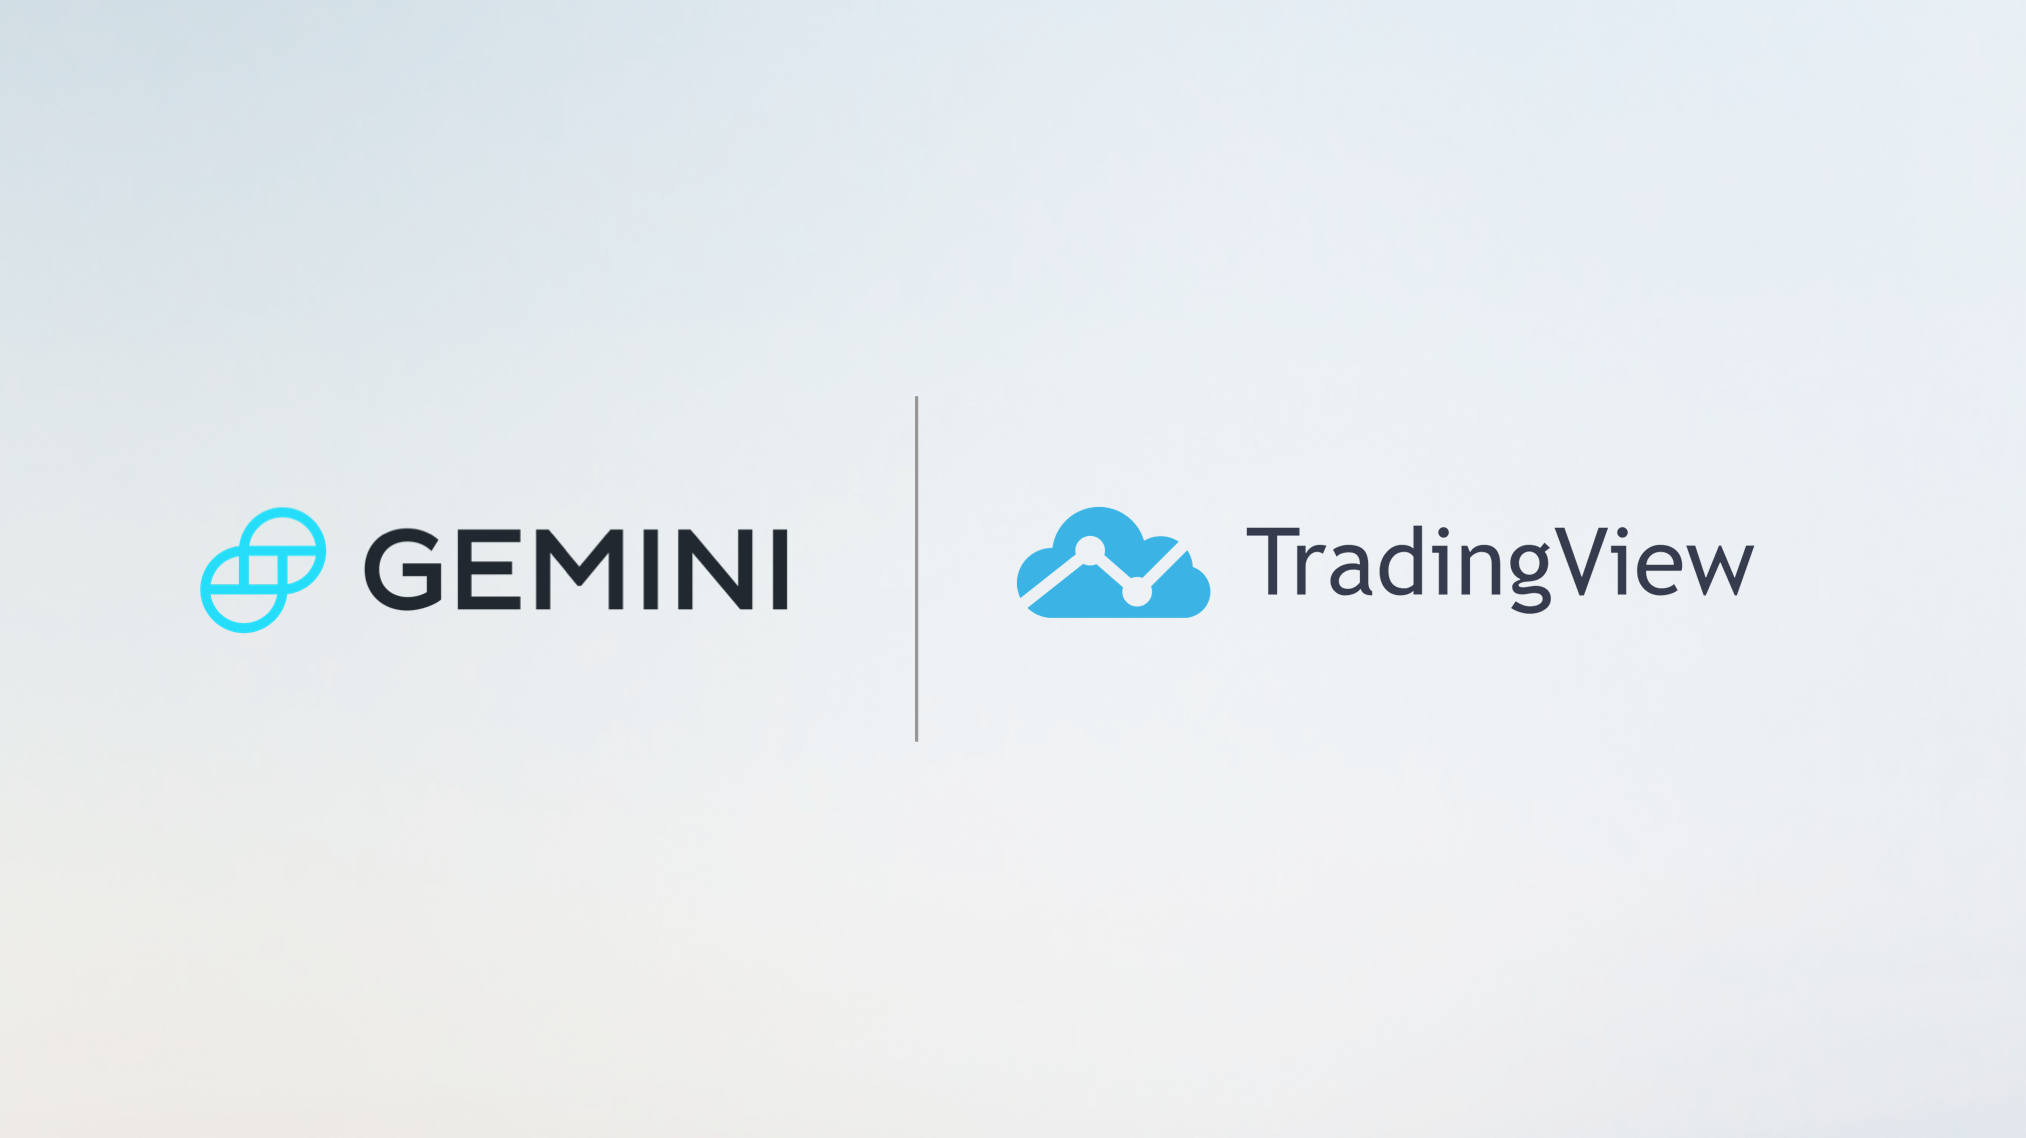 Gemini is now integrated with TradingView